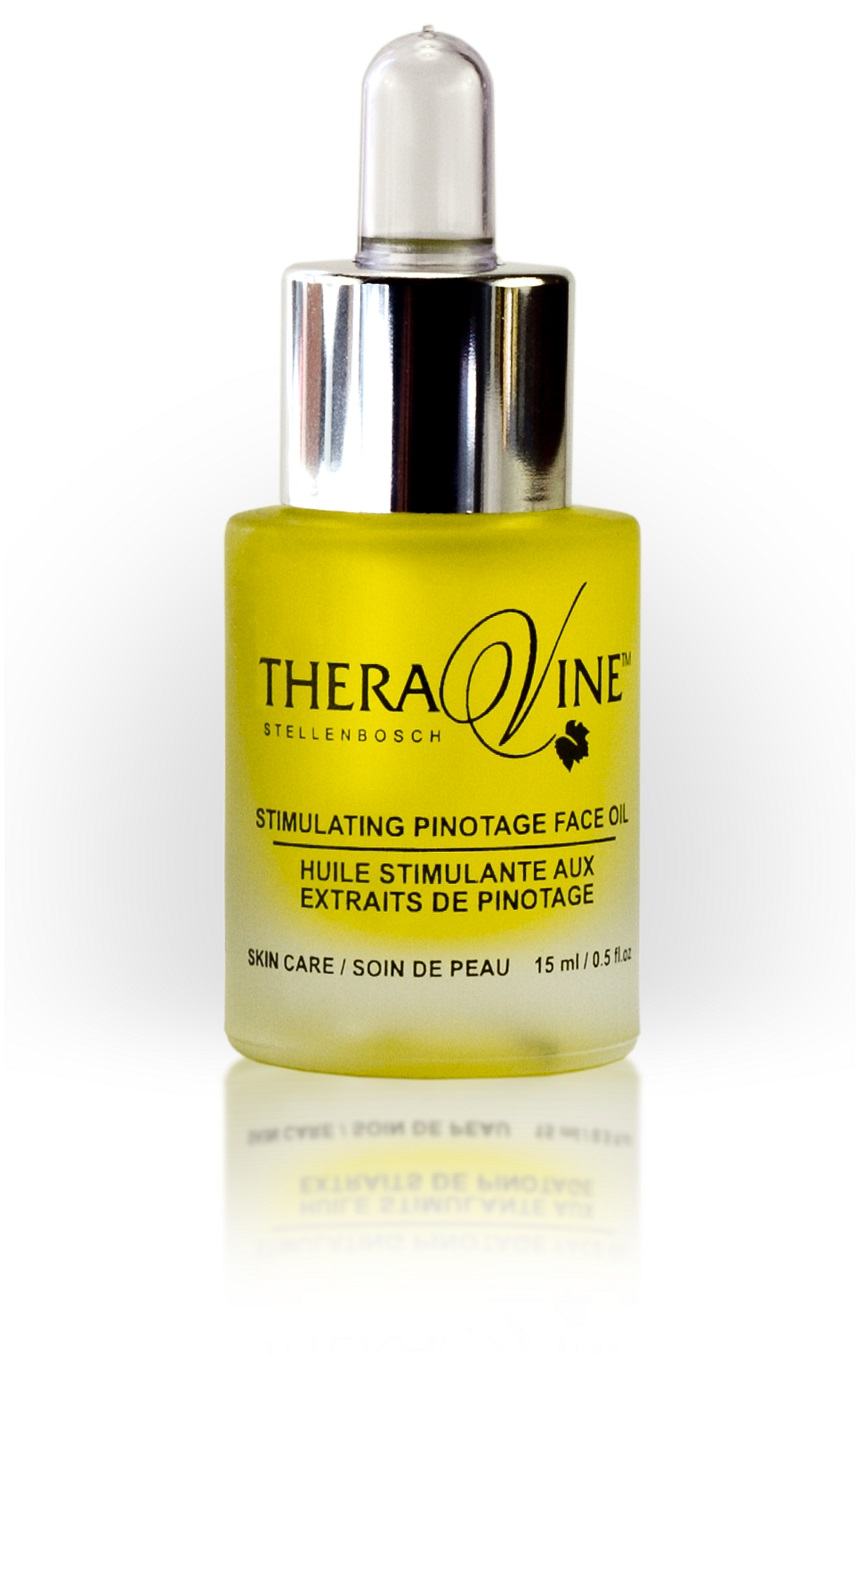 Stimulating Pinotage Face Oil